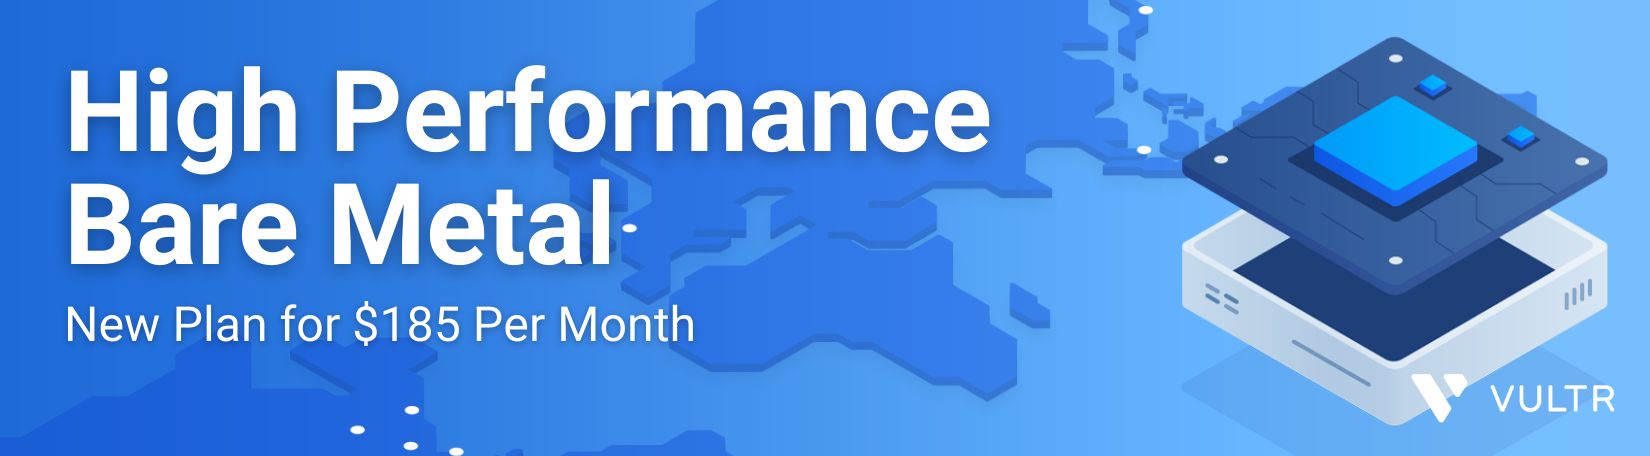 Introducing a New Vultr Bare Metal Plan for $185 per Month